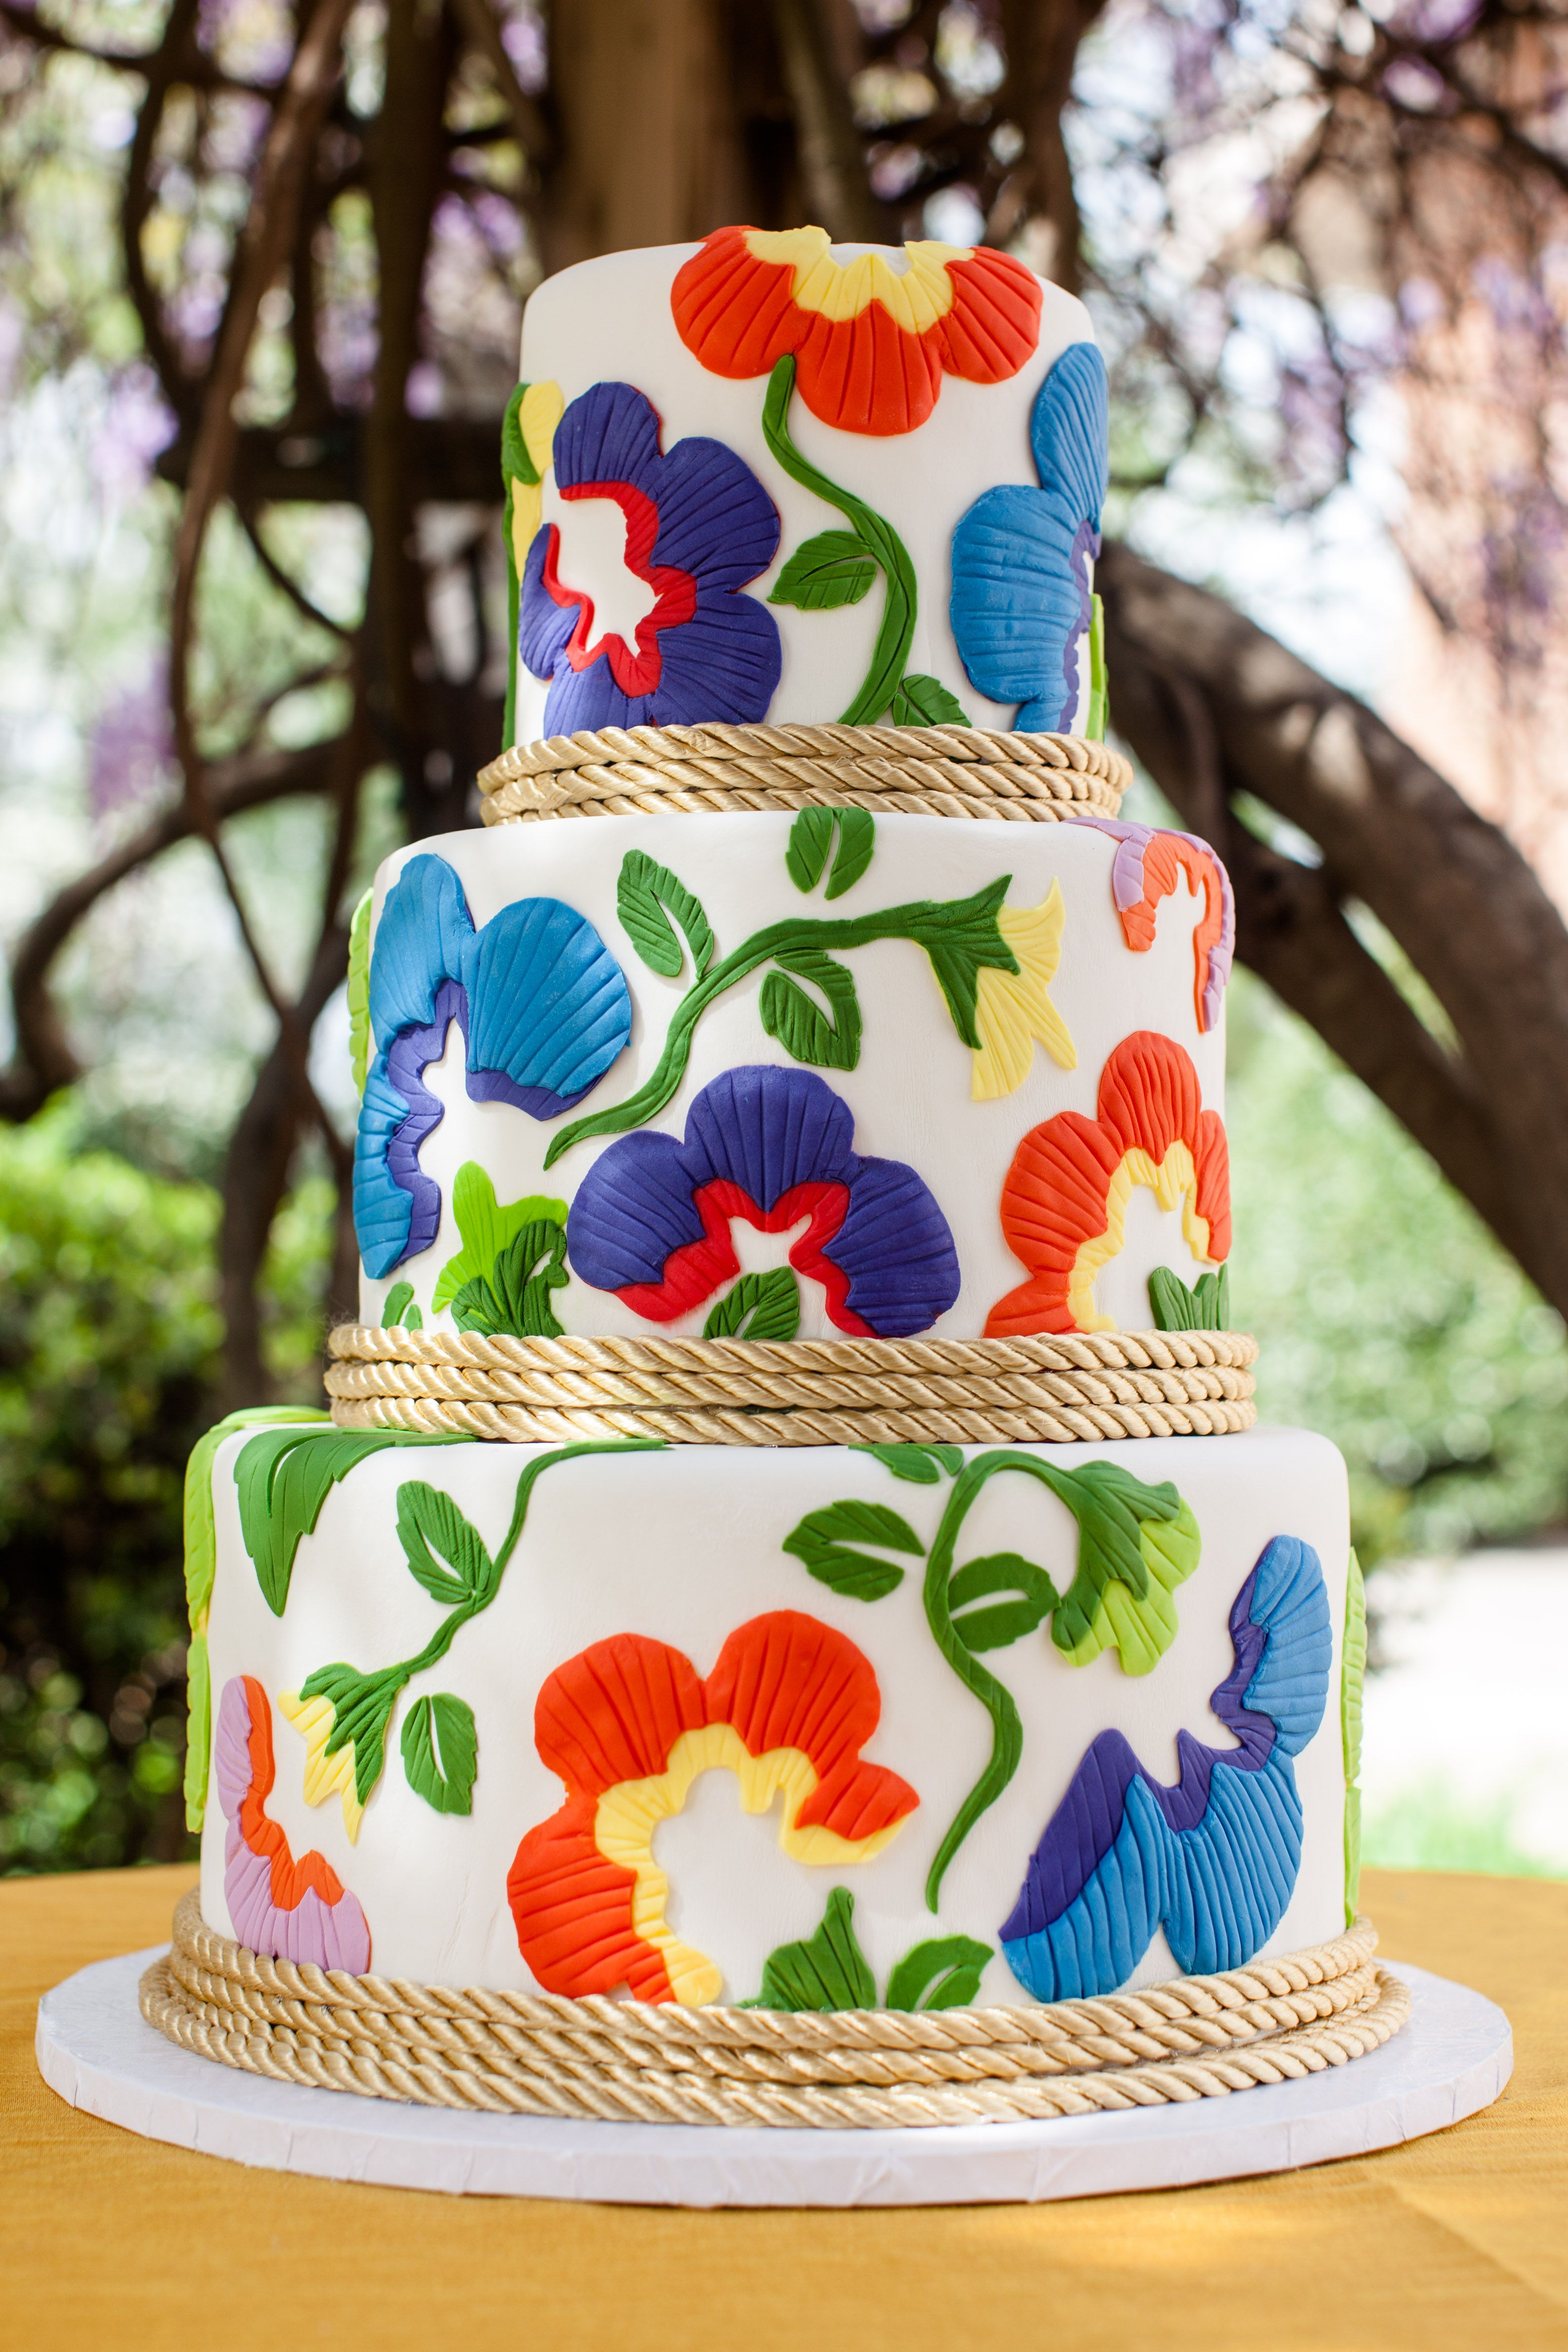 This bright, bohemian inspired cake is perfect for the fun